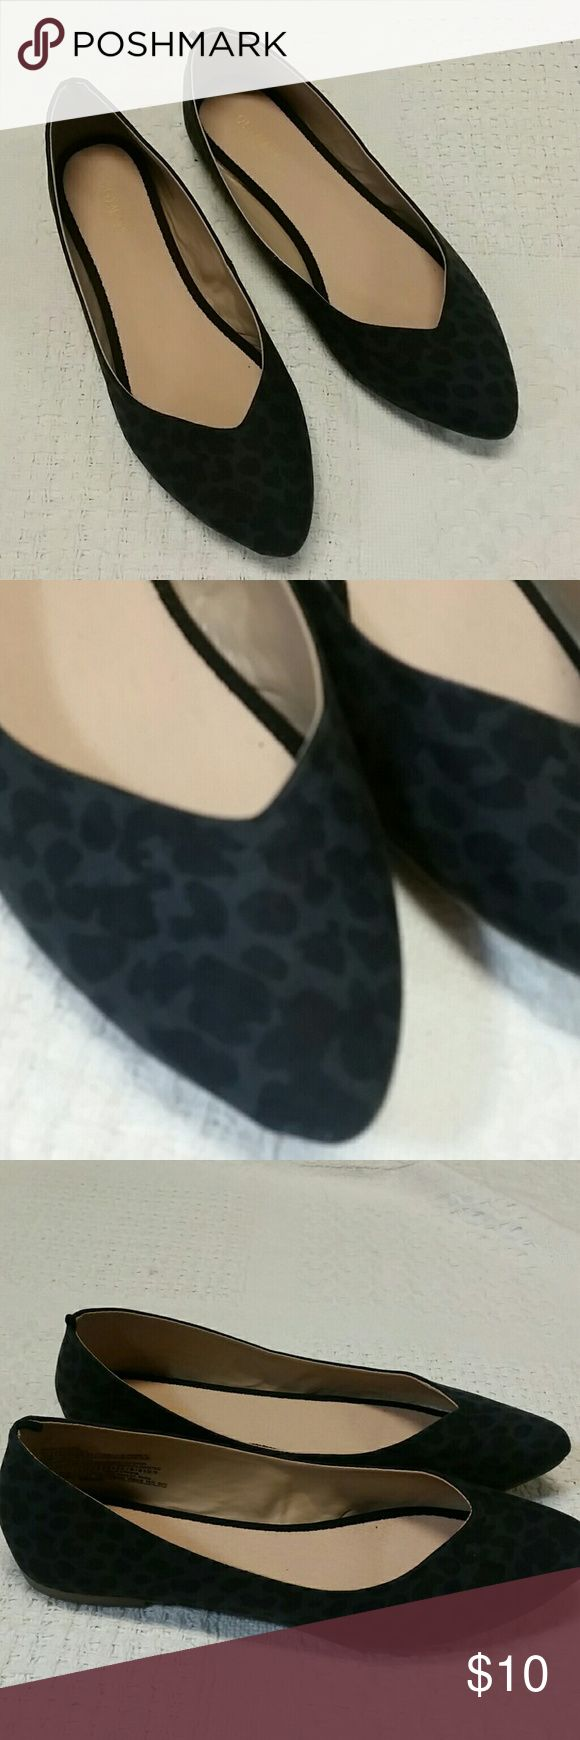 Old Navy ballet flats, animal print gray black Old Navy black and gray animal print flats Old Navy Shoes Flats & Loafers